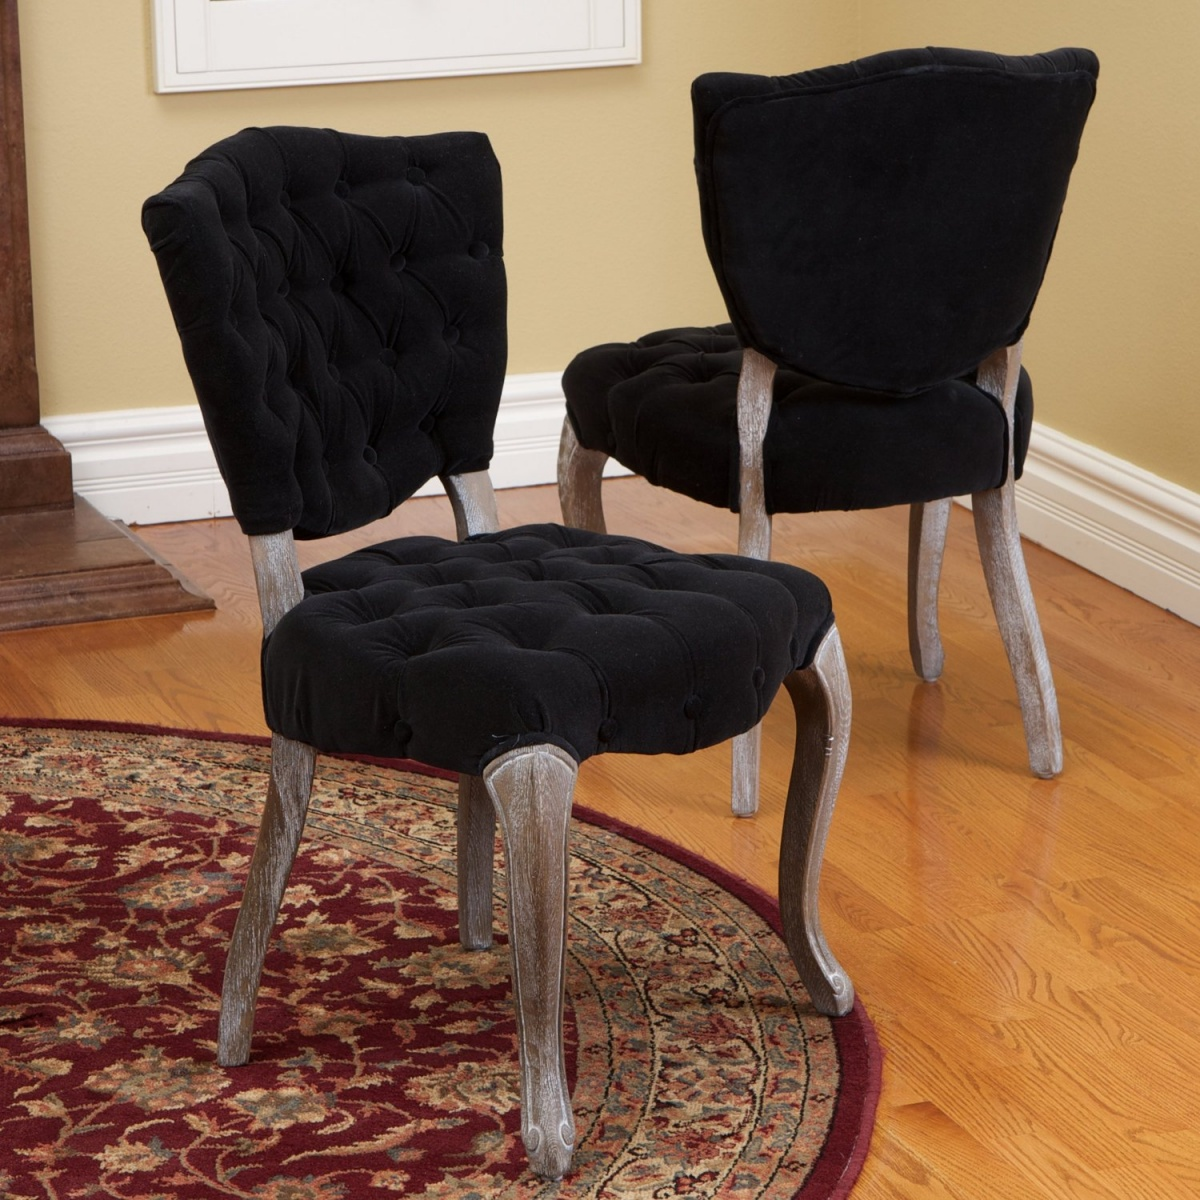 Fabric Chair Covers For Dining Room Chairs ... Part 62